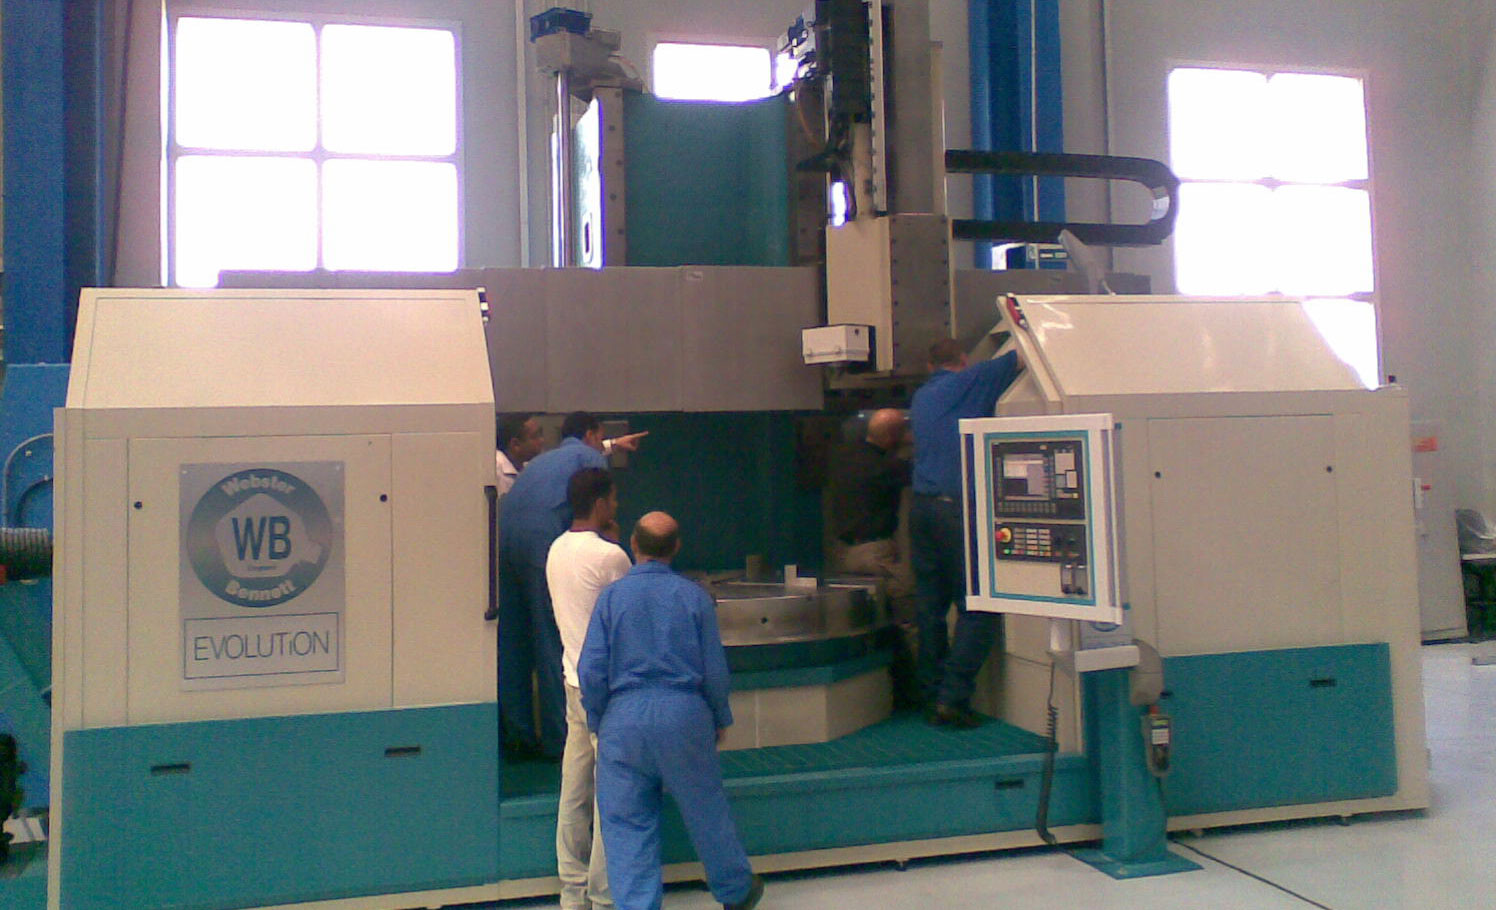 Evolution-cnc-Gallery-14-Precision-Turning-grinding-PCD-drilling